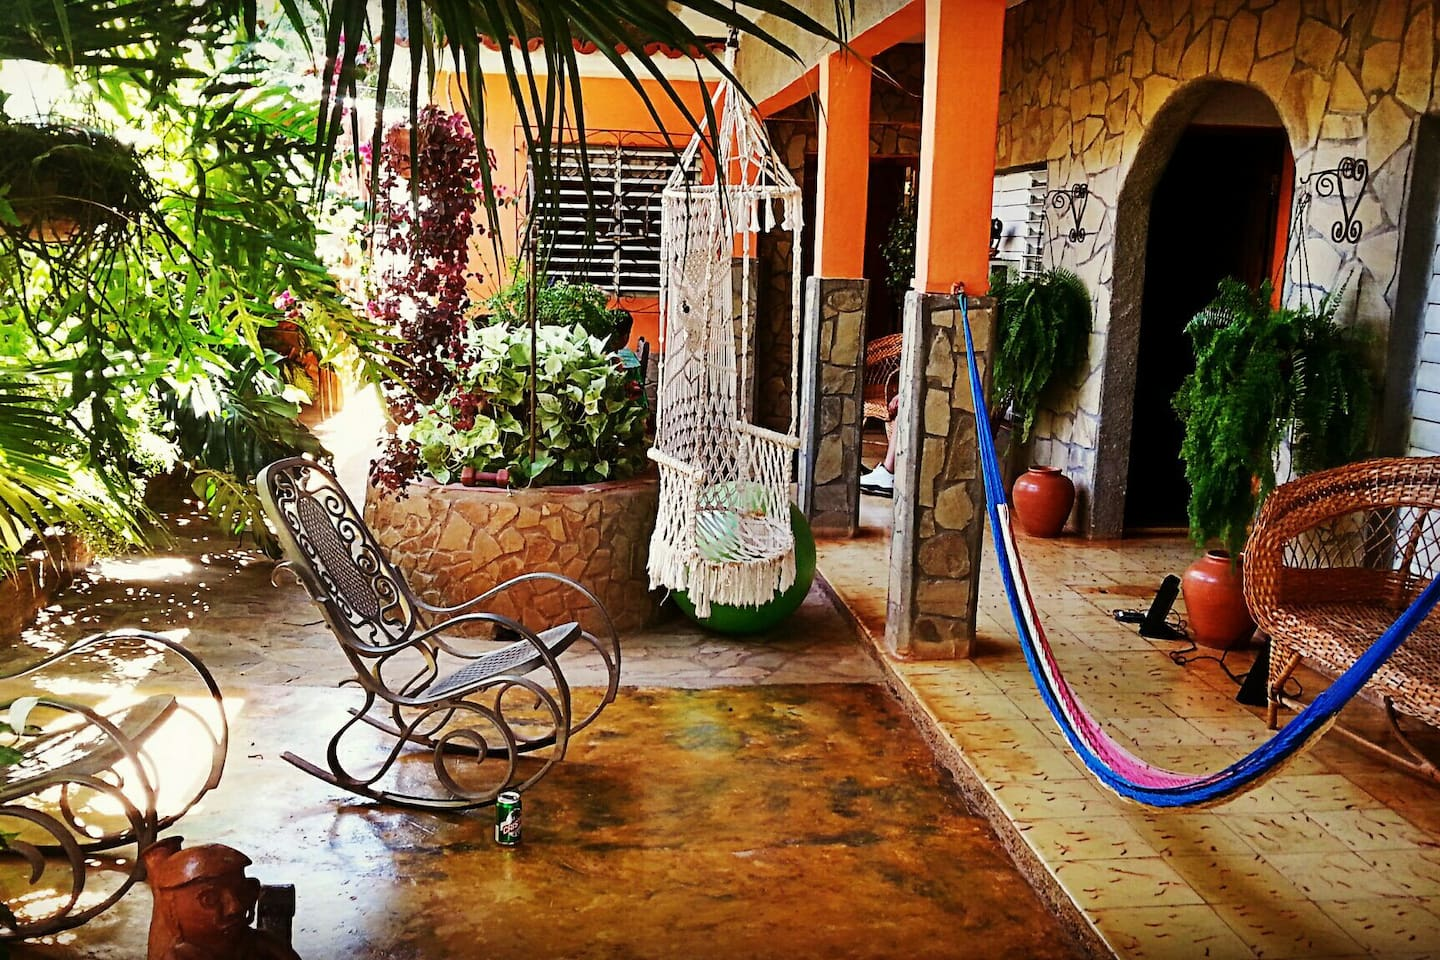 That blue rope is the relaxing hammock, the opening behind it is to the guest rooms, straight ahead is the kitchen,  and on the left is a private entrance to the courtyard.